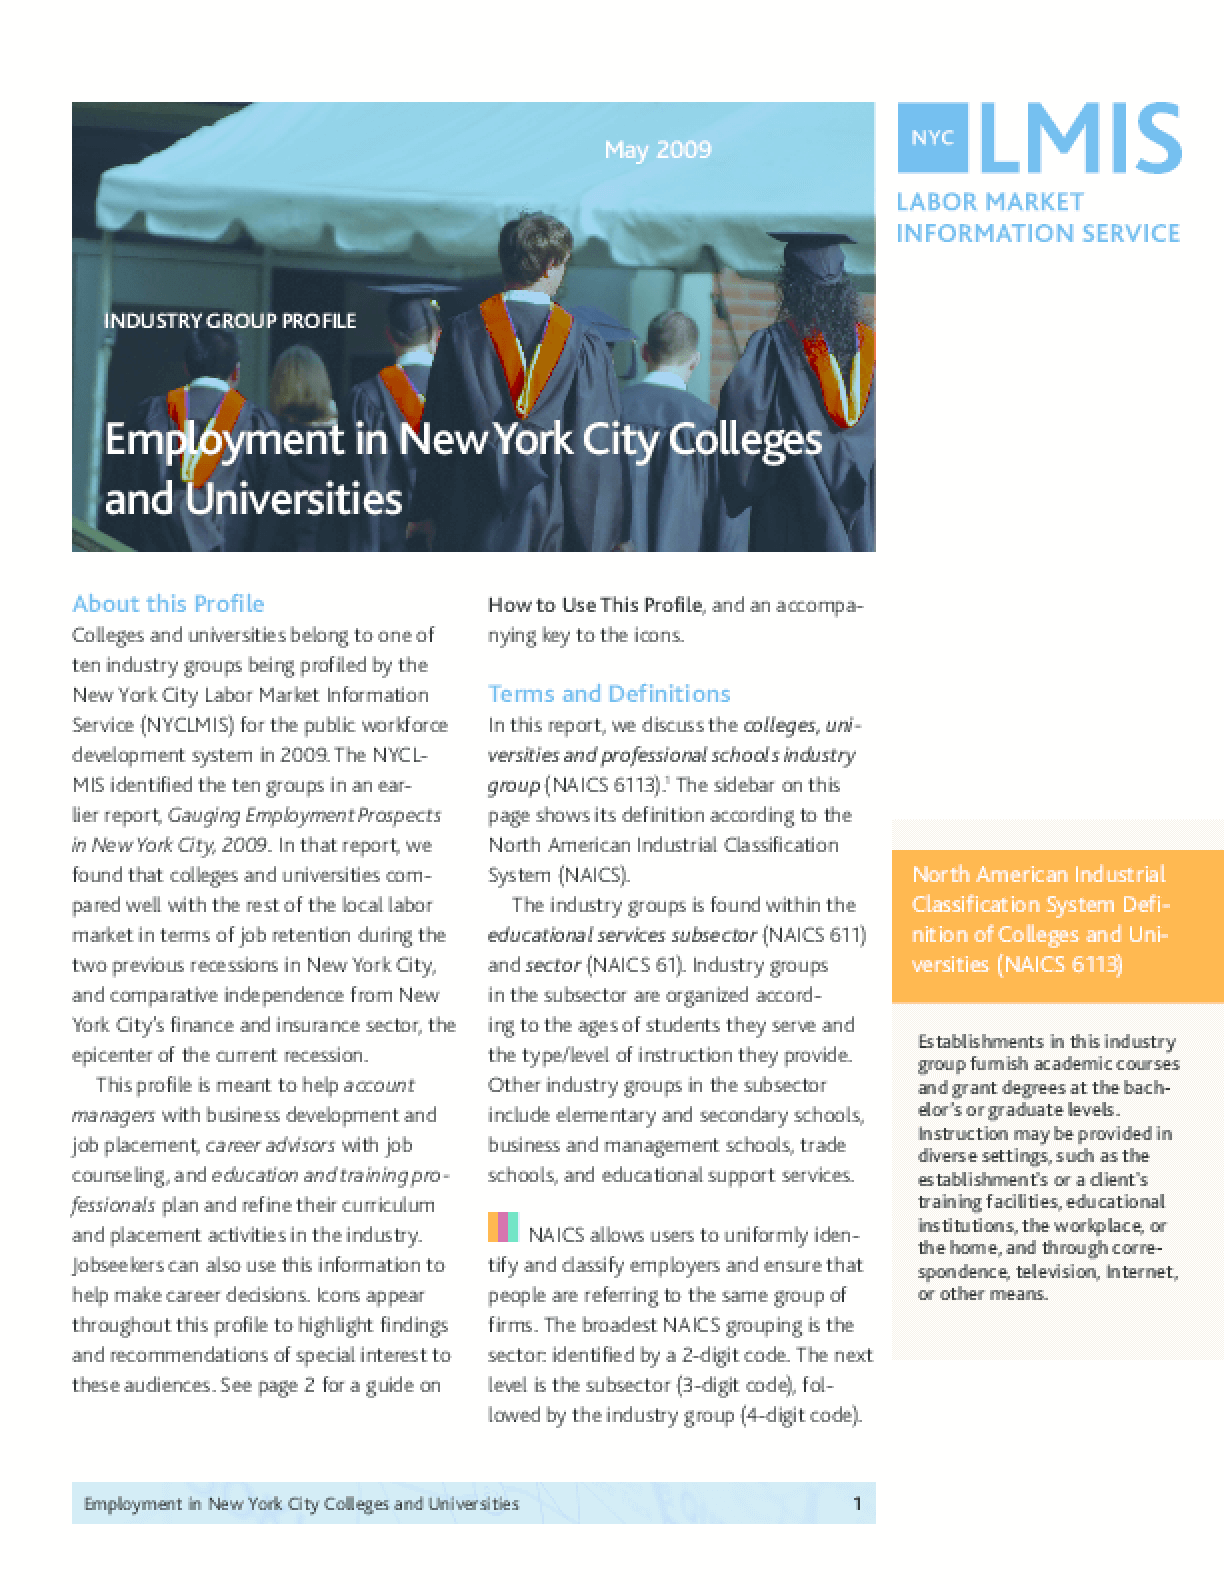 Employment in New York City Colleges and Universities: Industry Profile